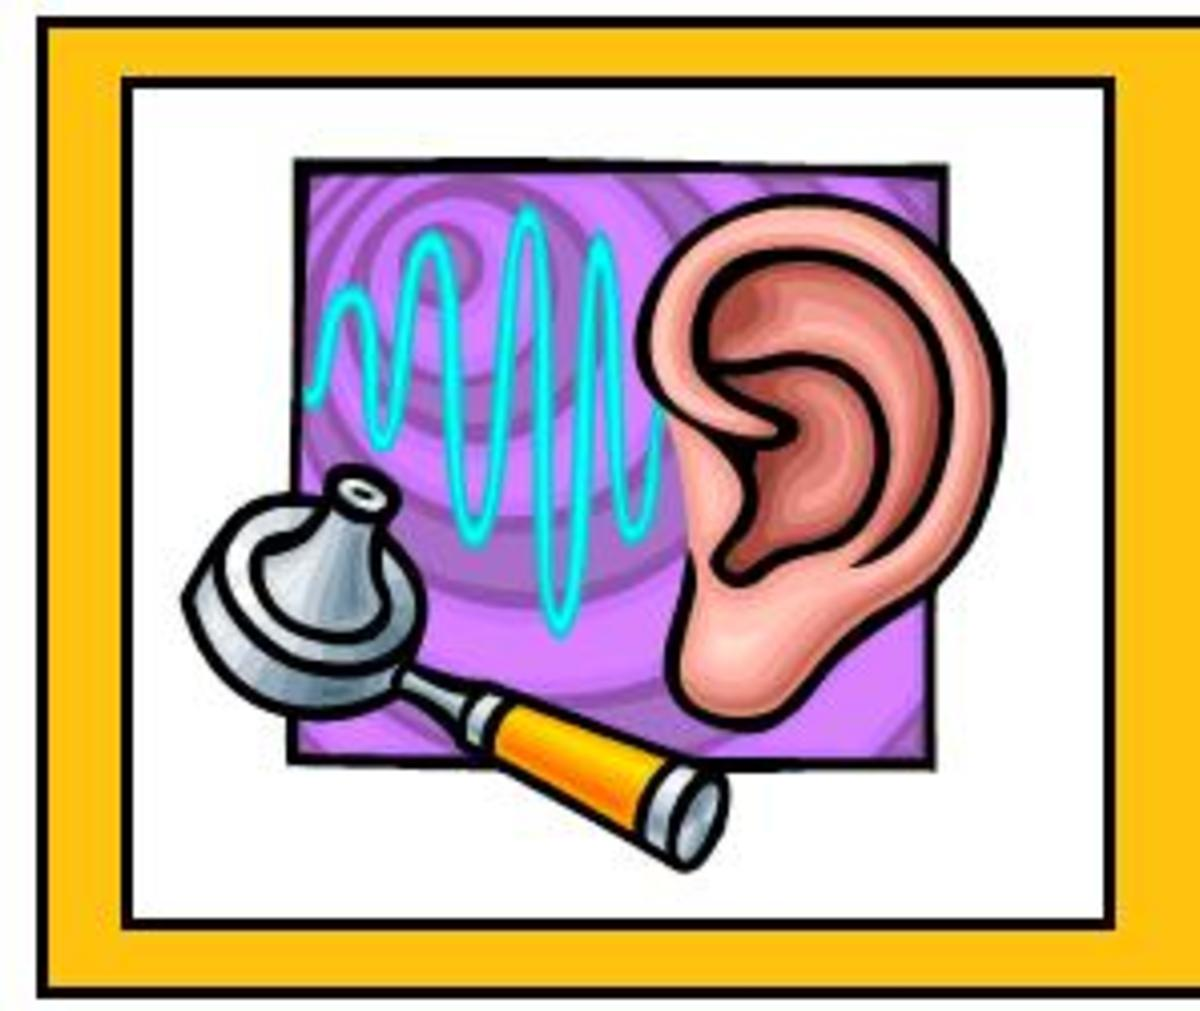 Tinnitus is the medical term for ringing in the ear.